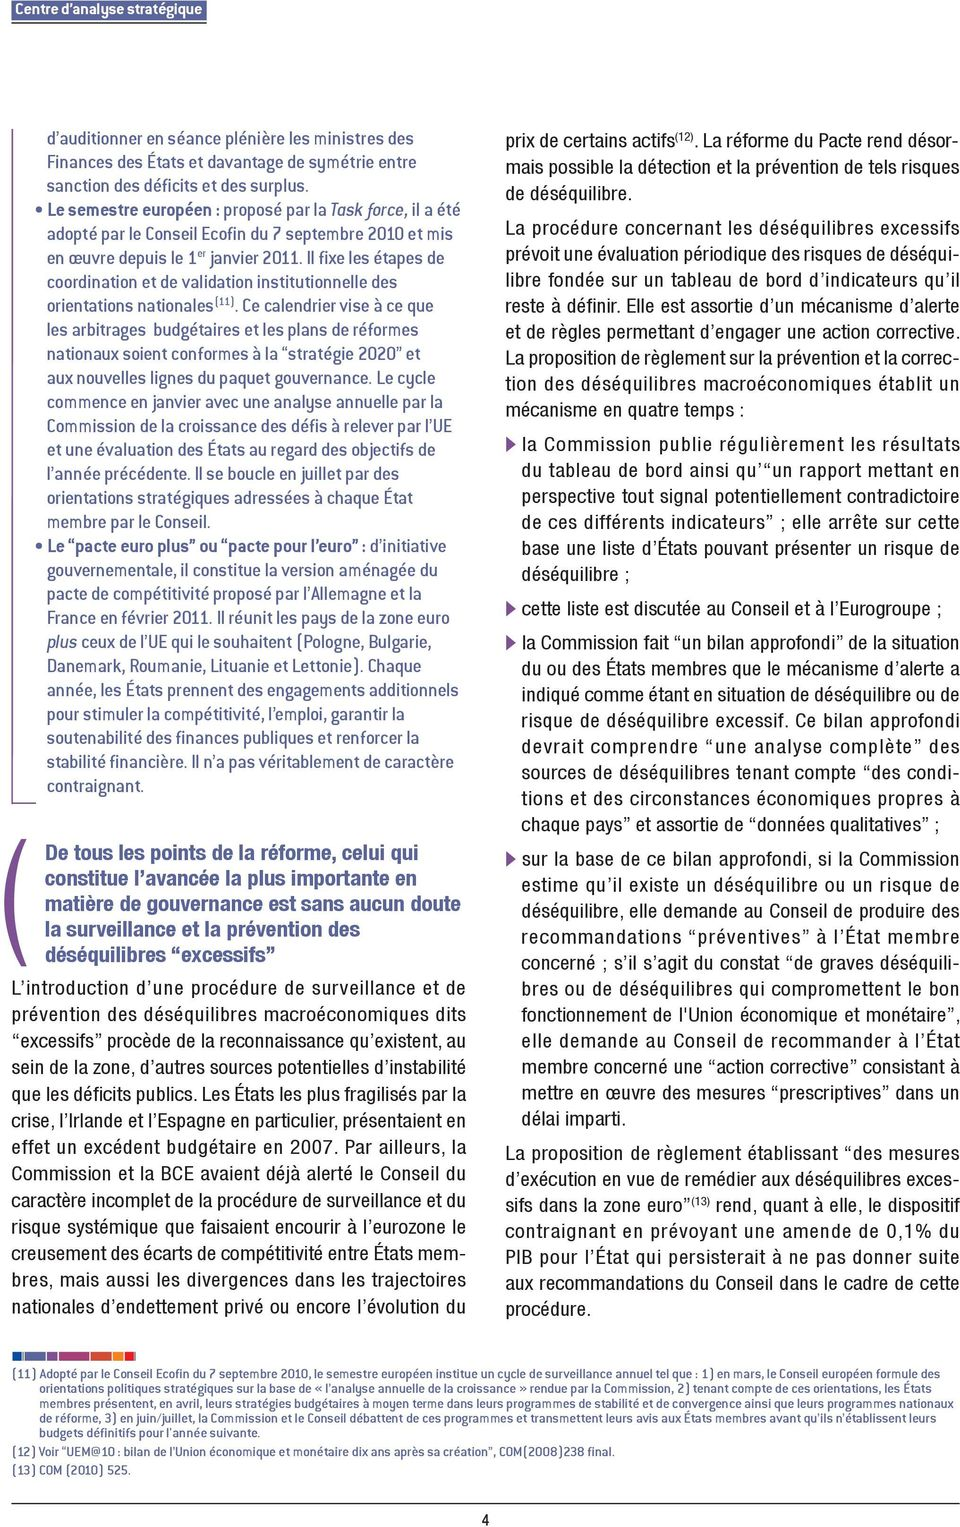 Il fixe les étapes de coordination et de validation institutionnelle des orientations nationales 11).